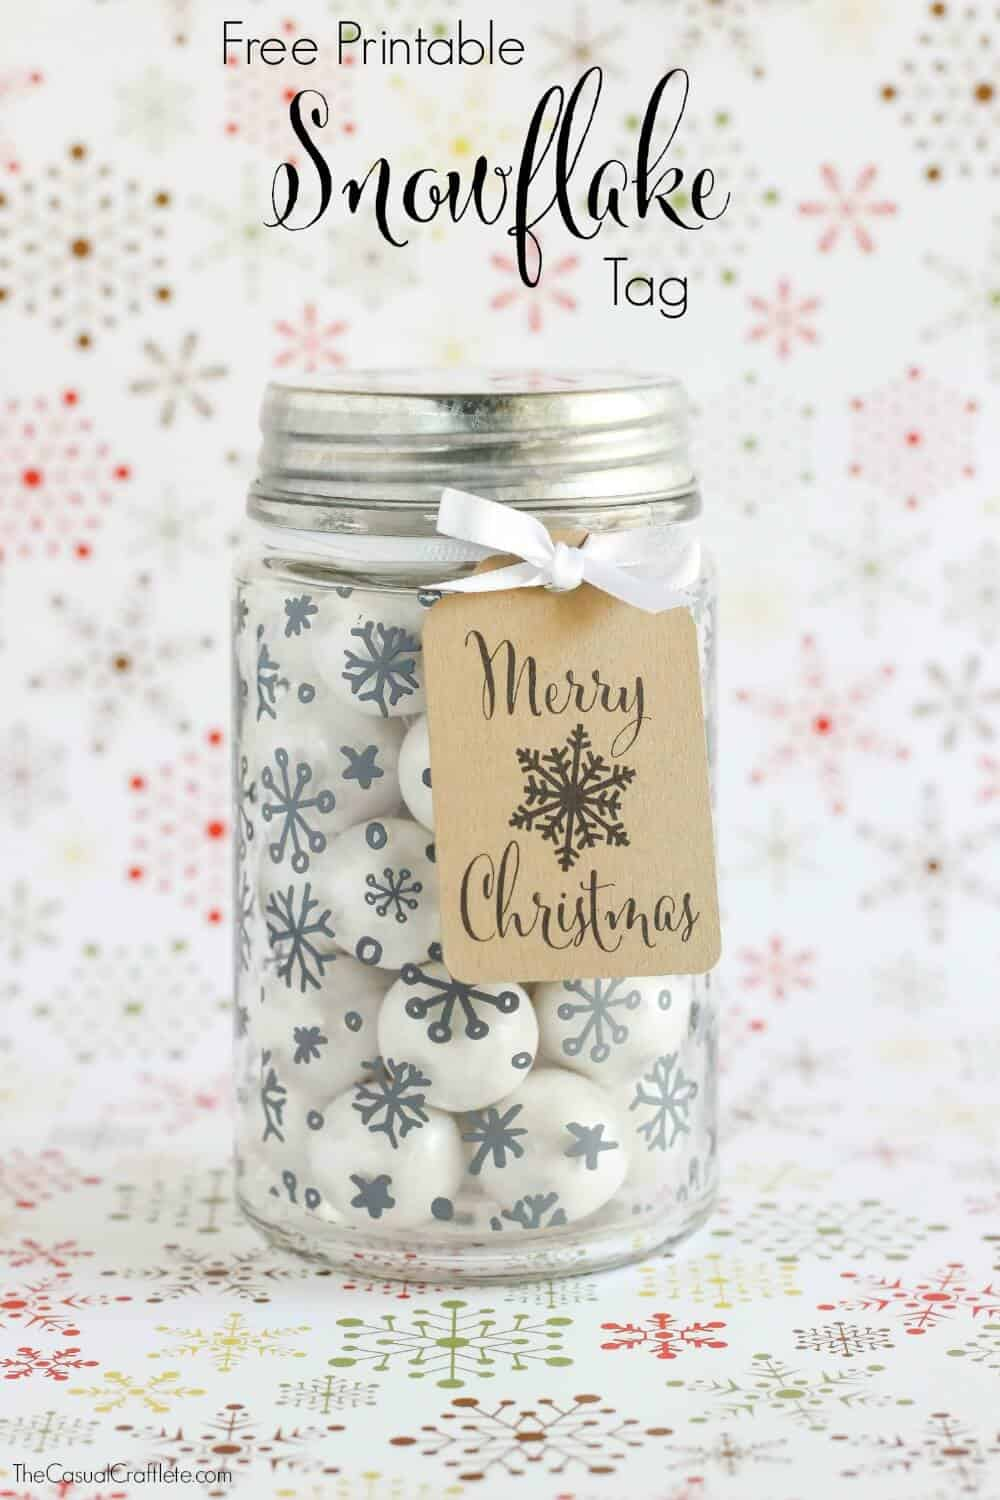 Free Printable Snowflake Tag – a great gift idea for neighbors ...